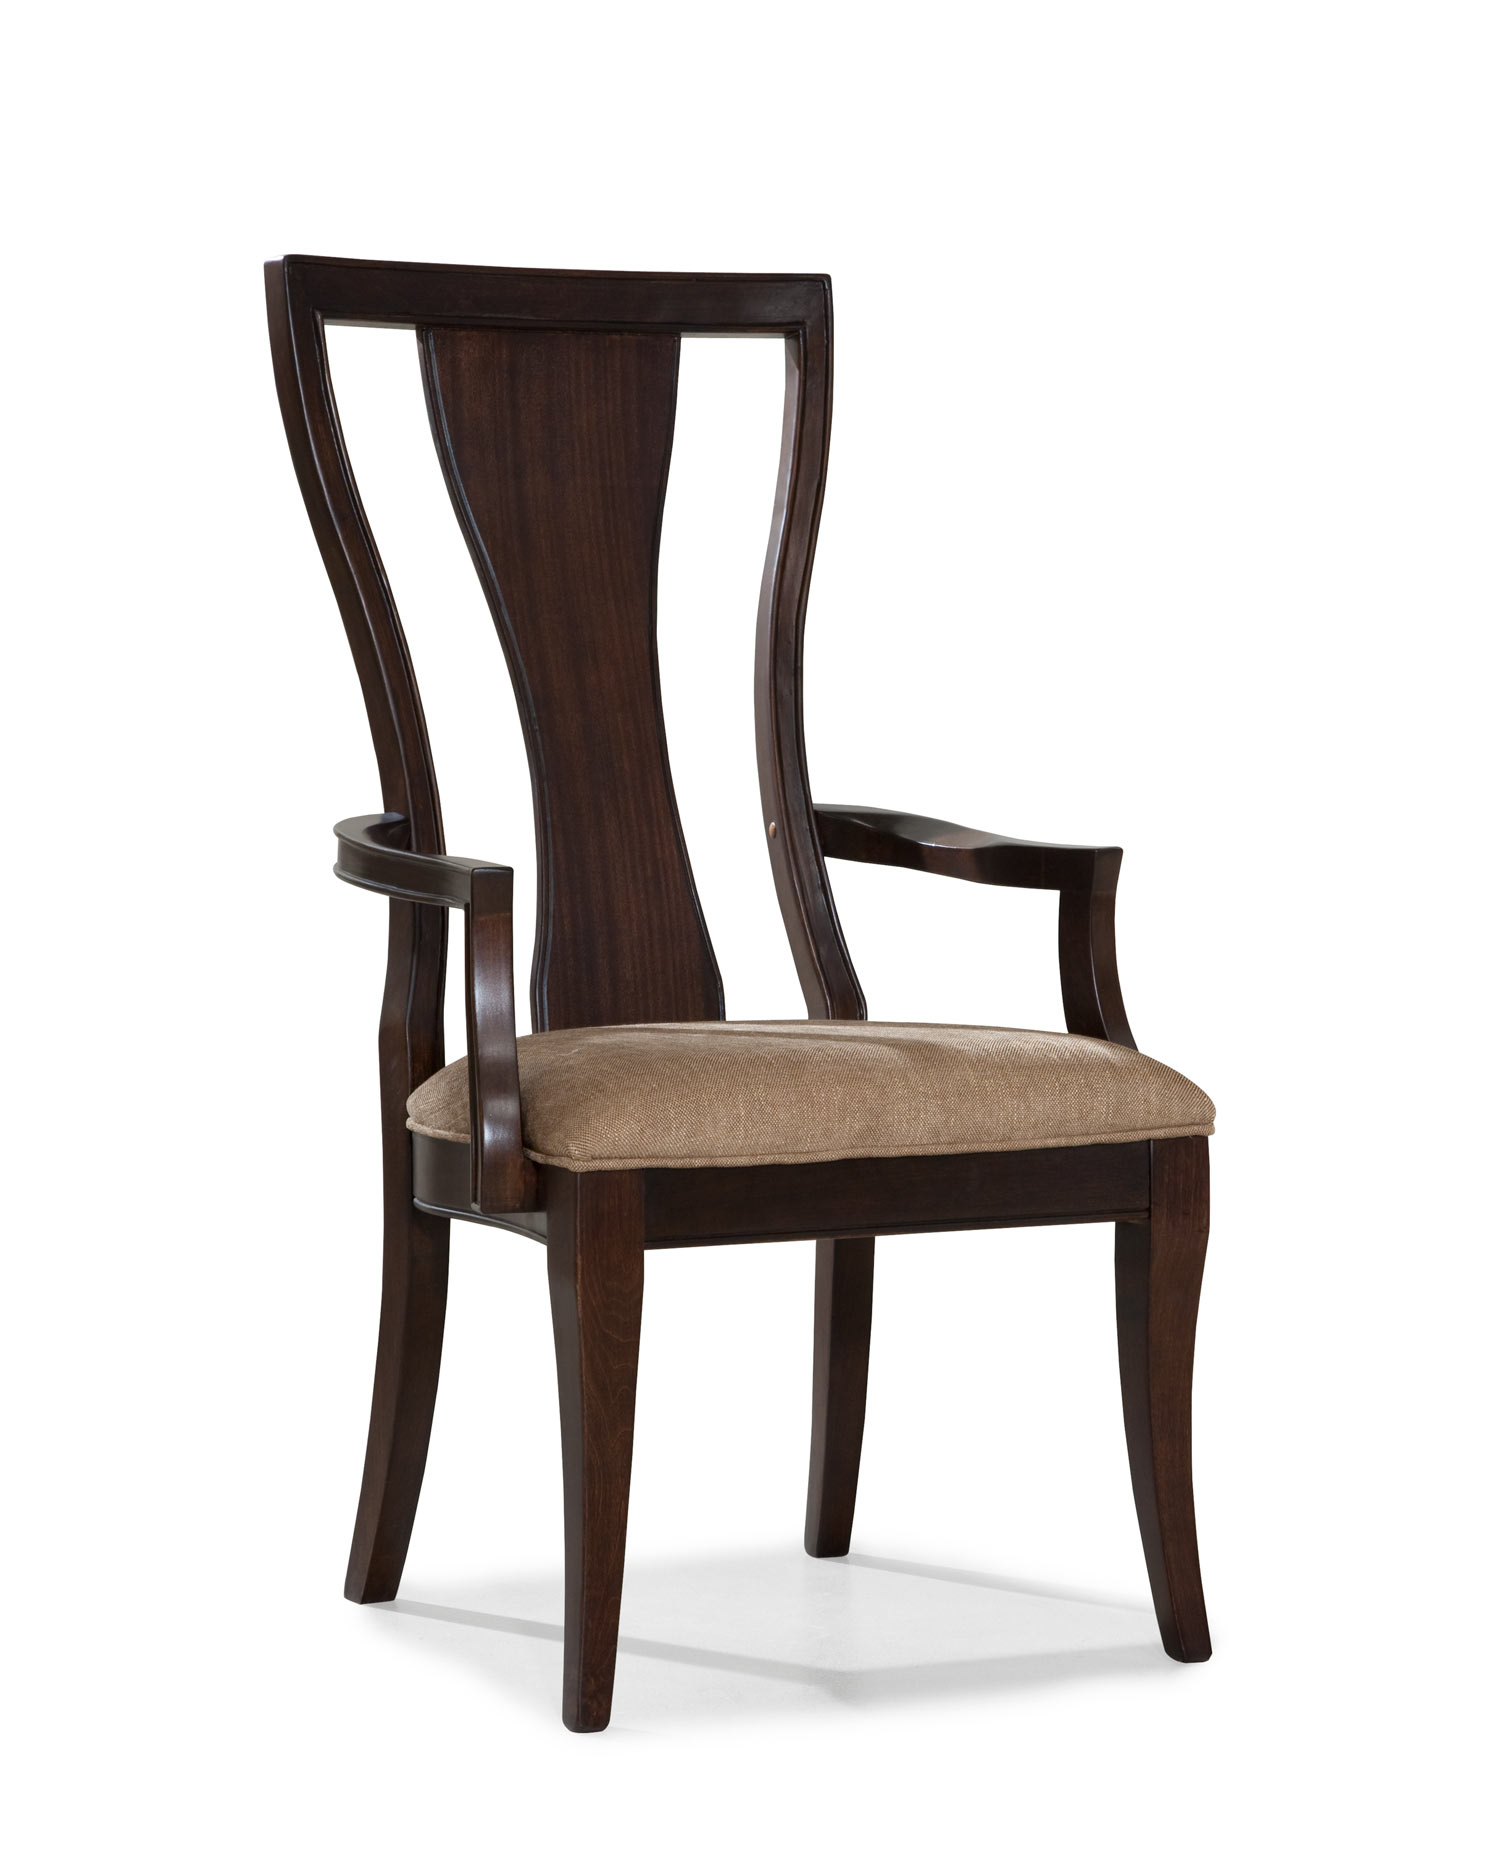 Legacy Classic Laurel Heights Splat Back Arm Chair - Dark Truffle